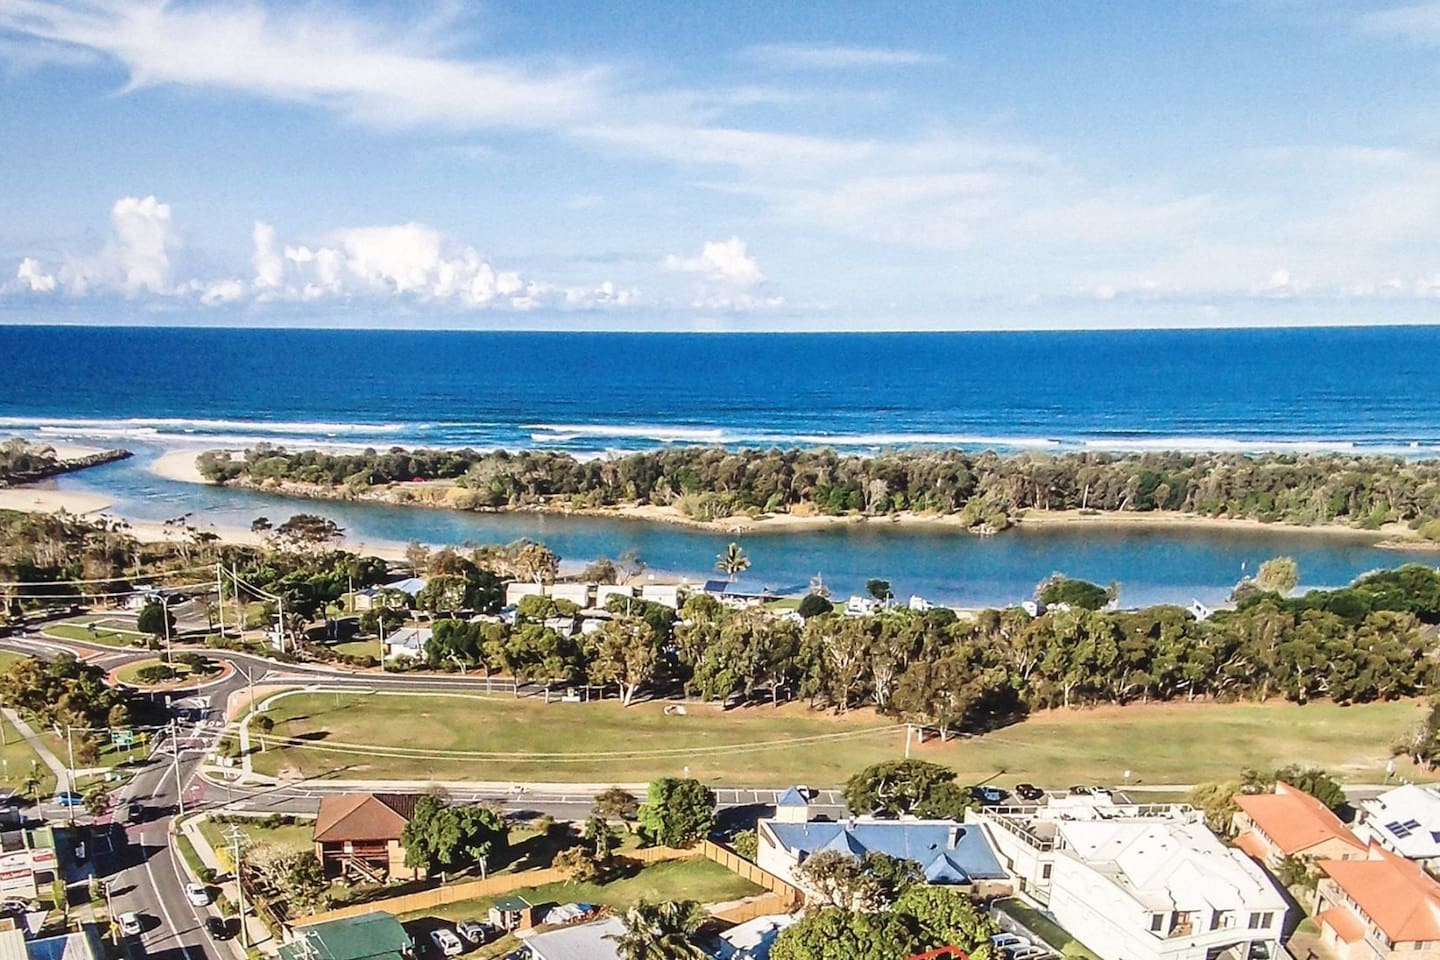 Pottsville Beach and village has a great beach and lake ,IGA for your shopping and great restaurants and cafes